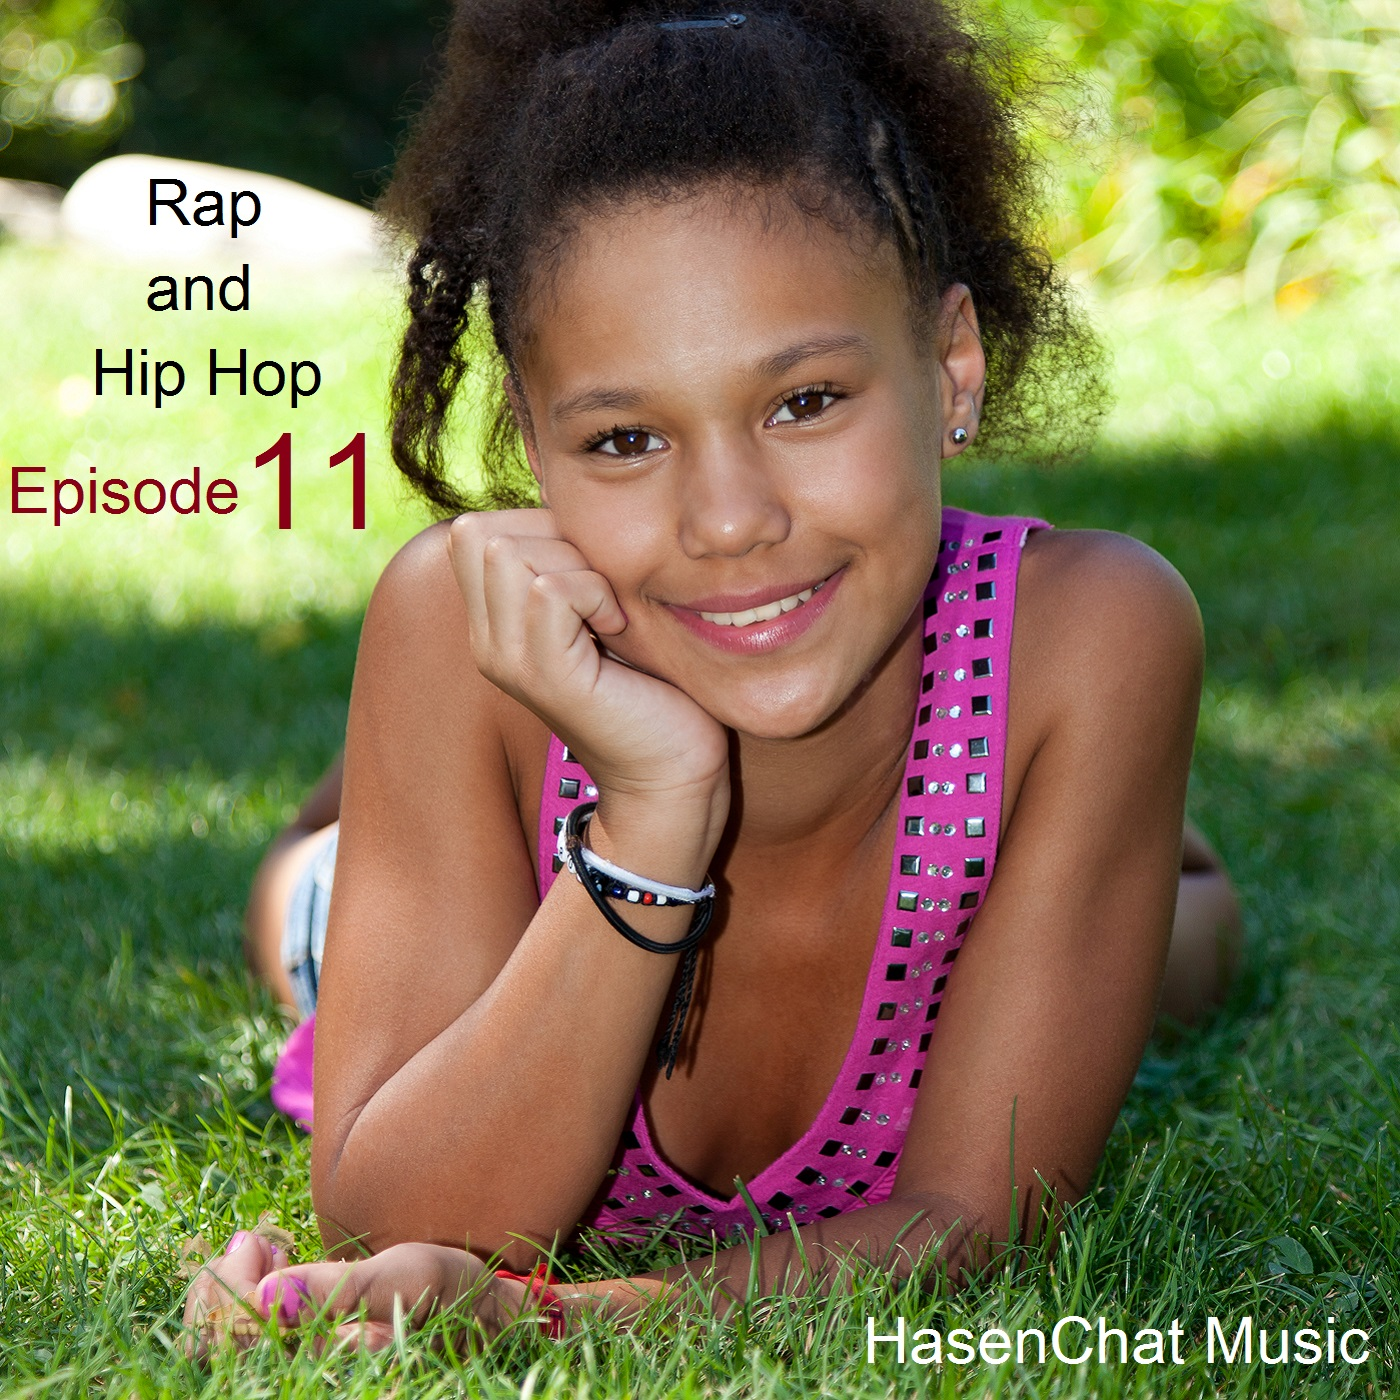 HasenChat Music - Rap and Hip Hop - Episode 11